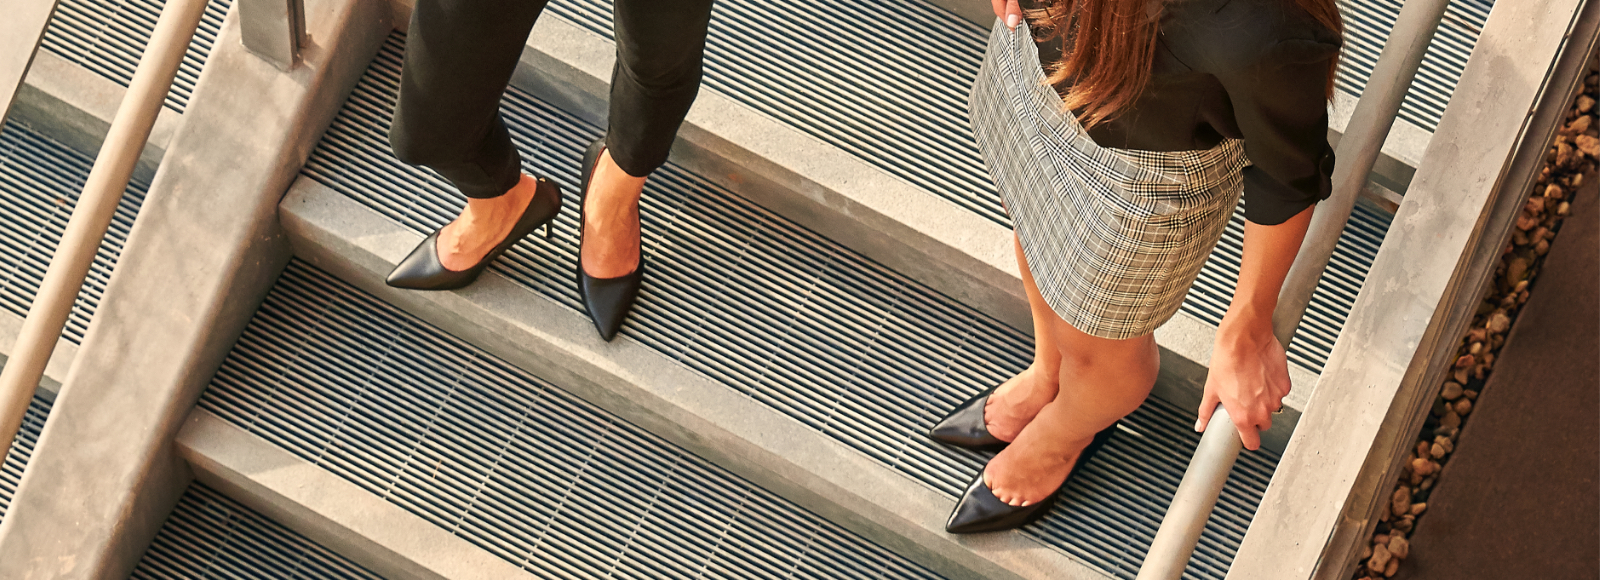 Aerial view of two women talking on stairs while wearing Sof Sole® comfort insoles and black leather heels.